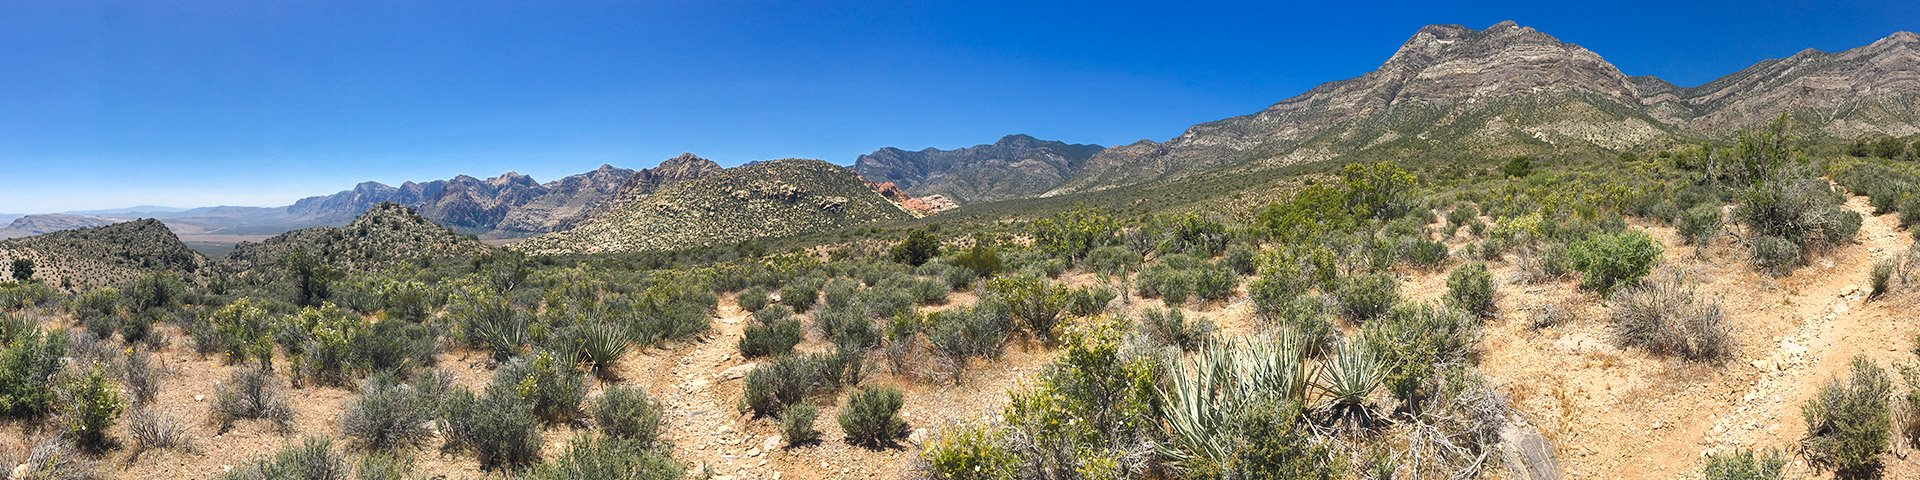 Best day hikes near Las Vegas